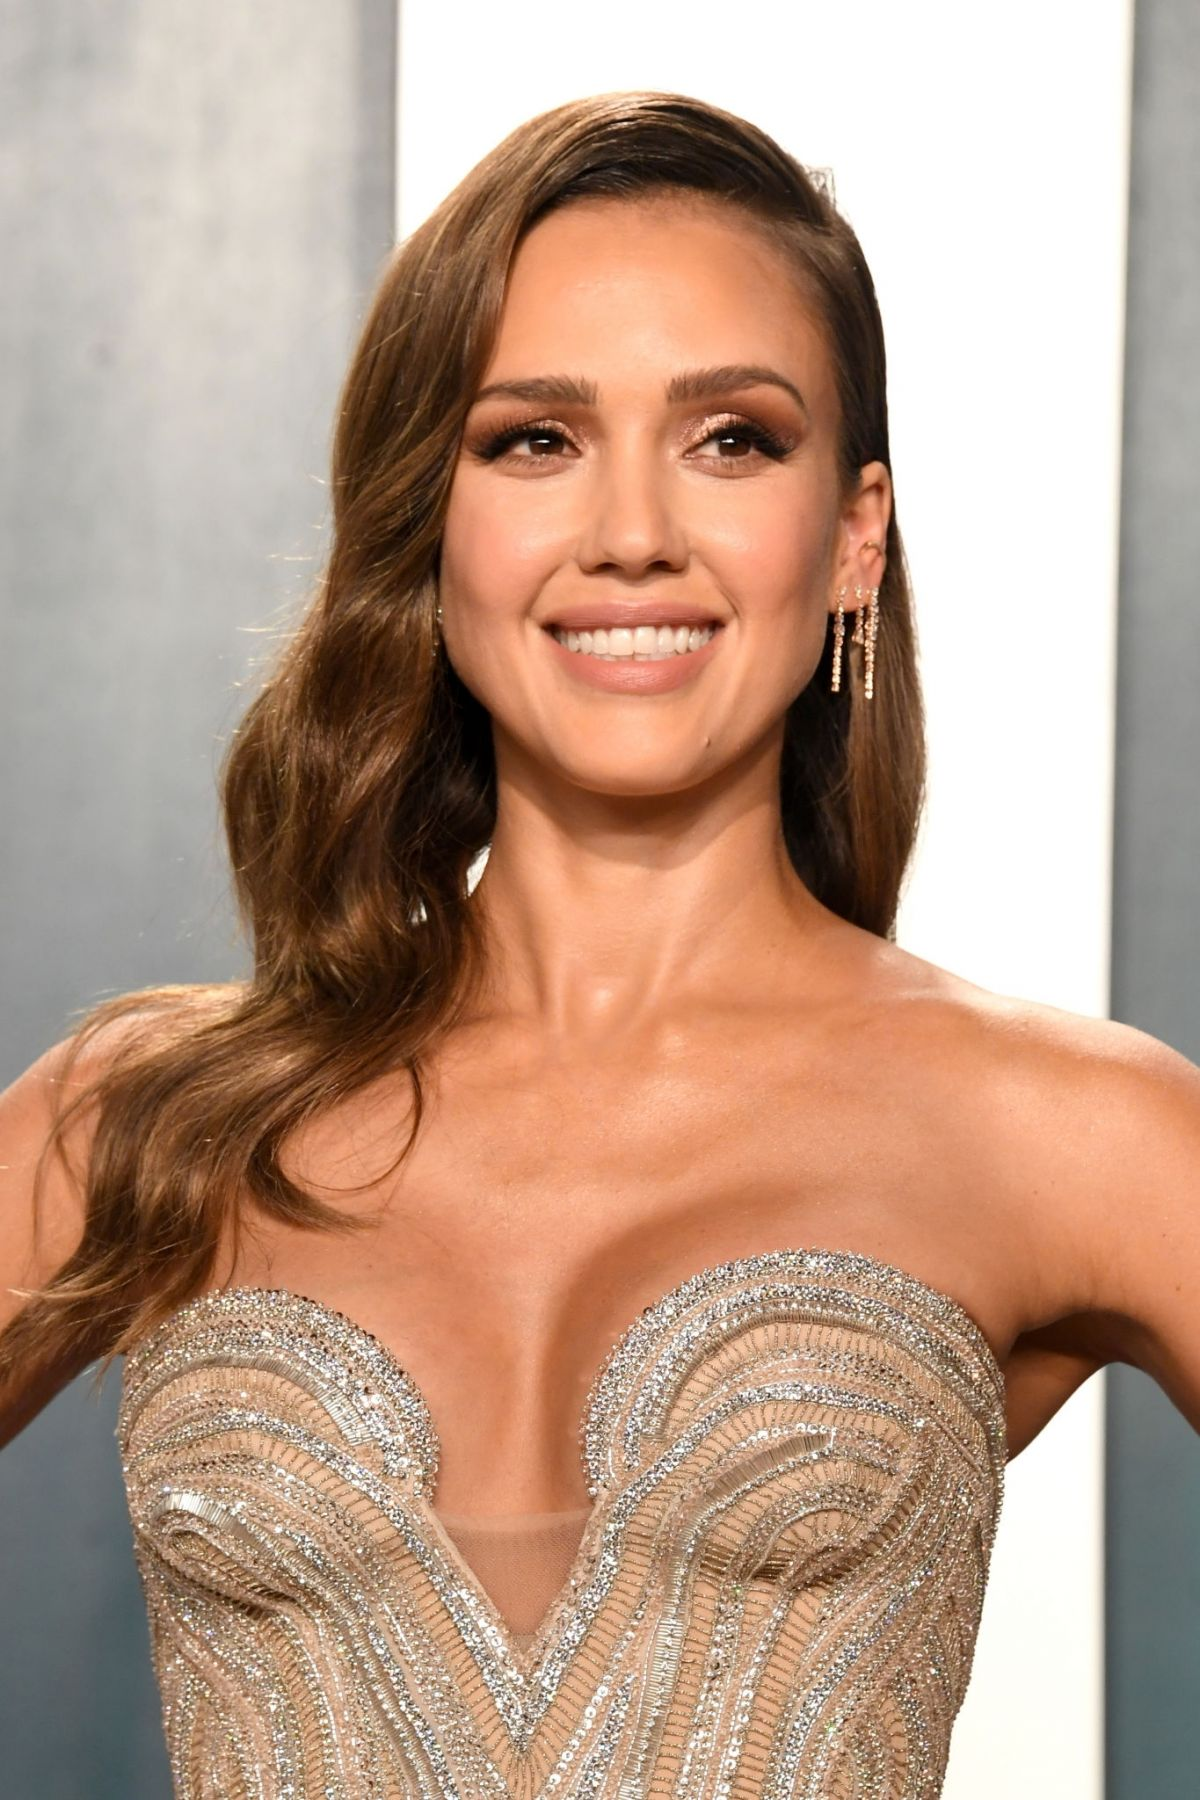 Jessica Alba Cries Over Daughter Honors Height in Sweet